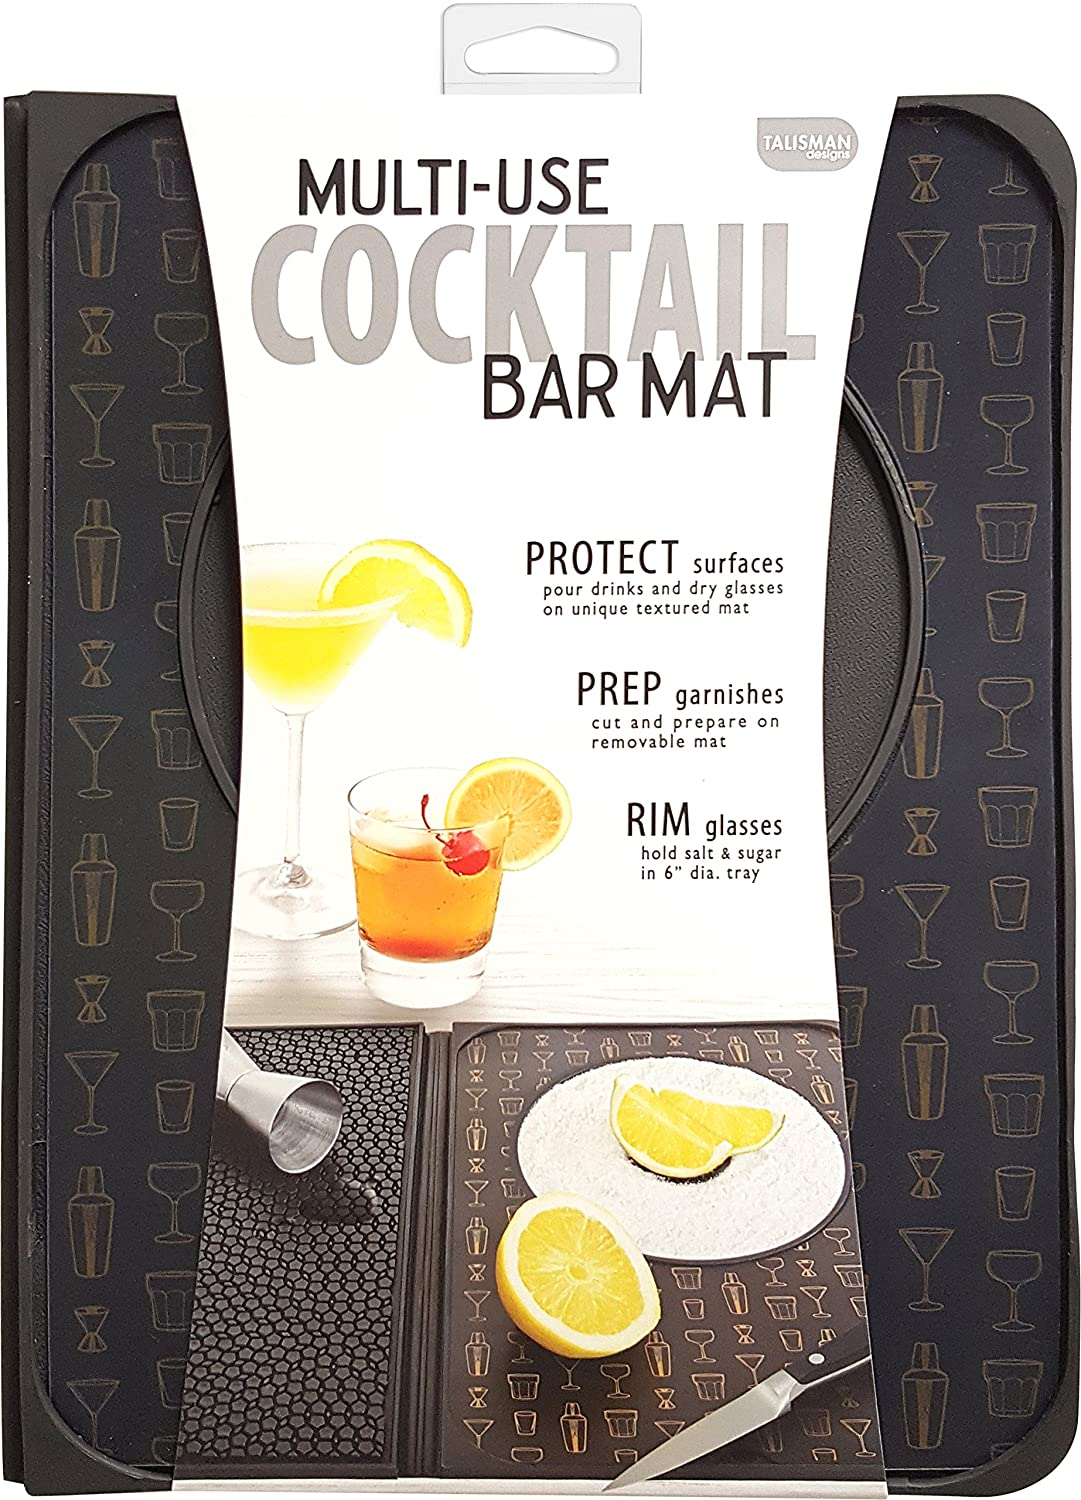 Talisman Designs Multi-Use Cocktail bar Mat, Black 5010